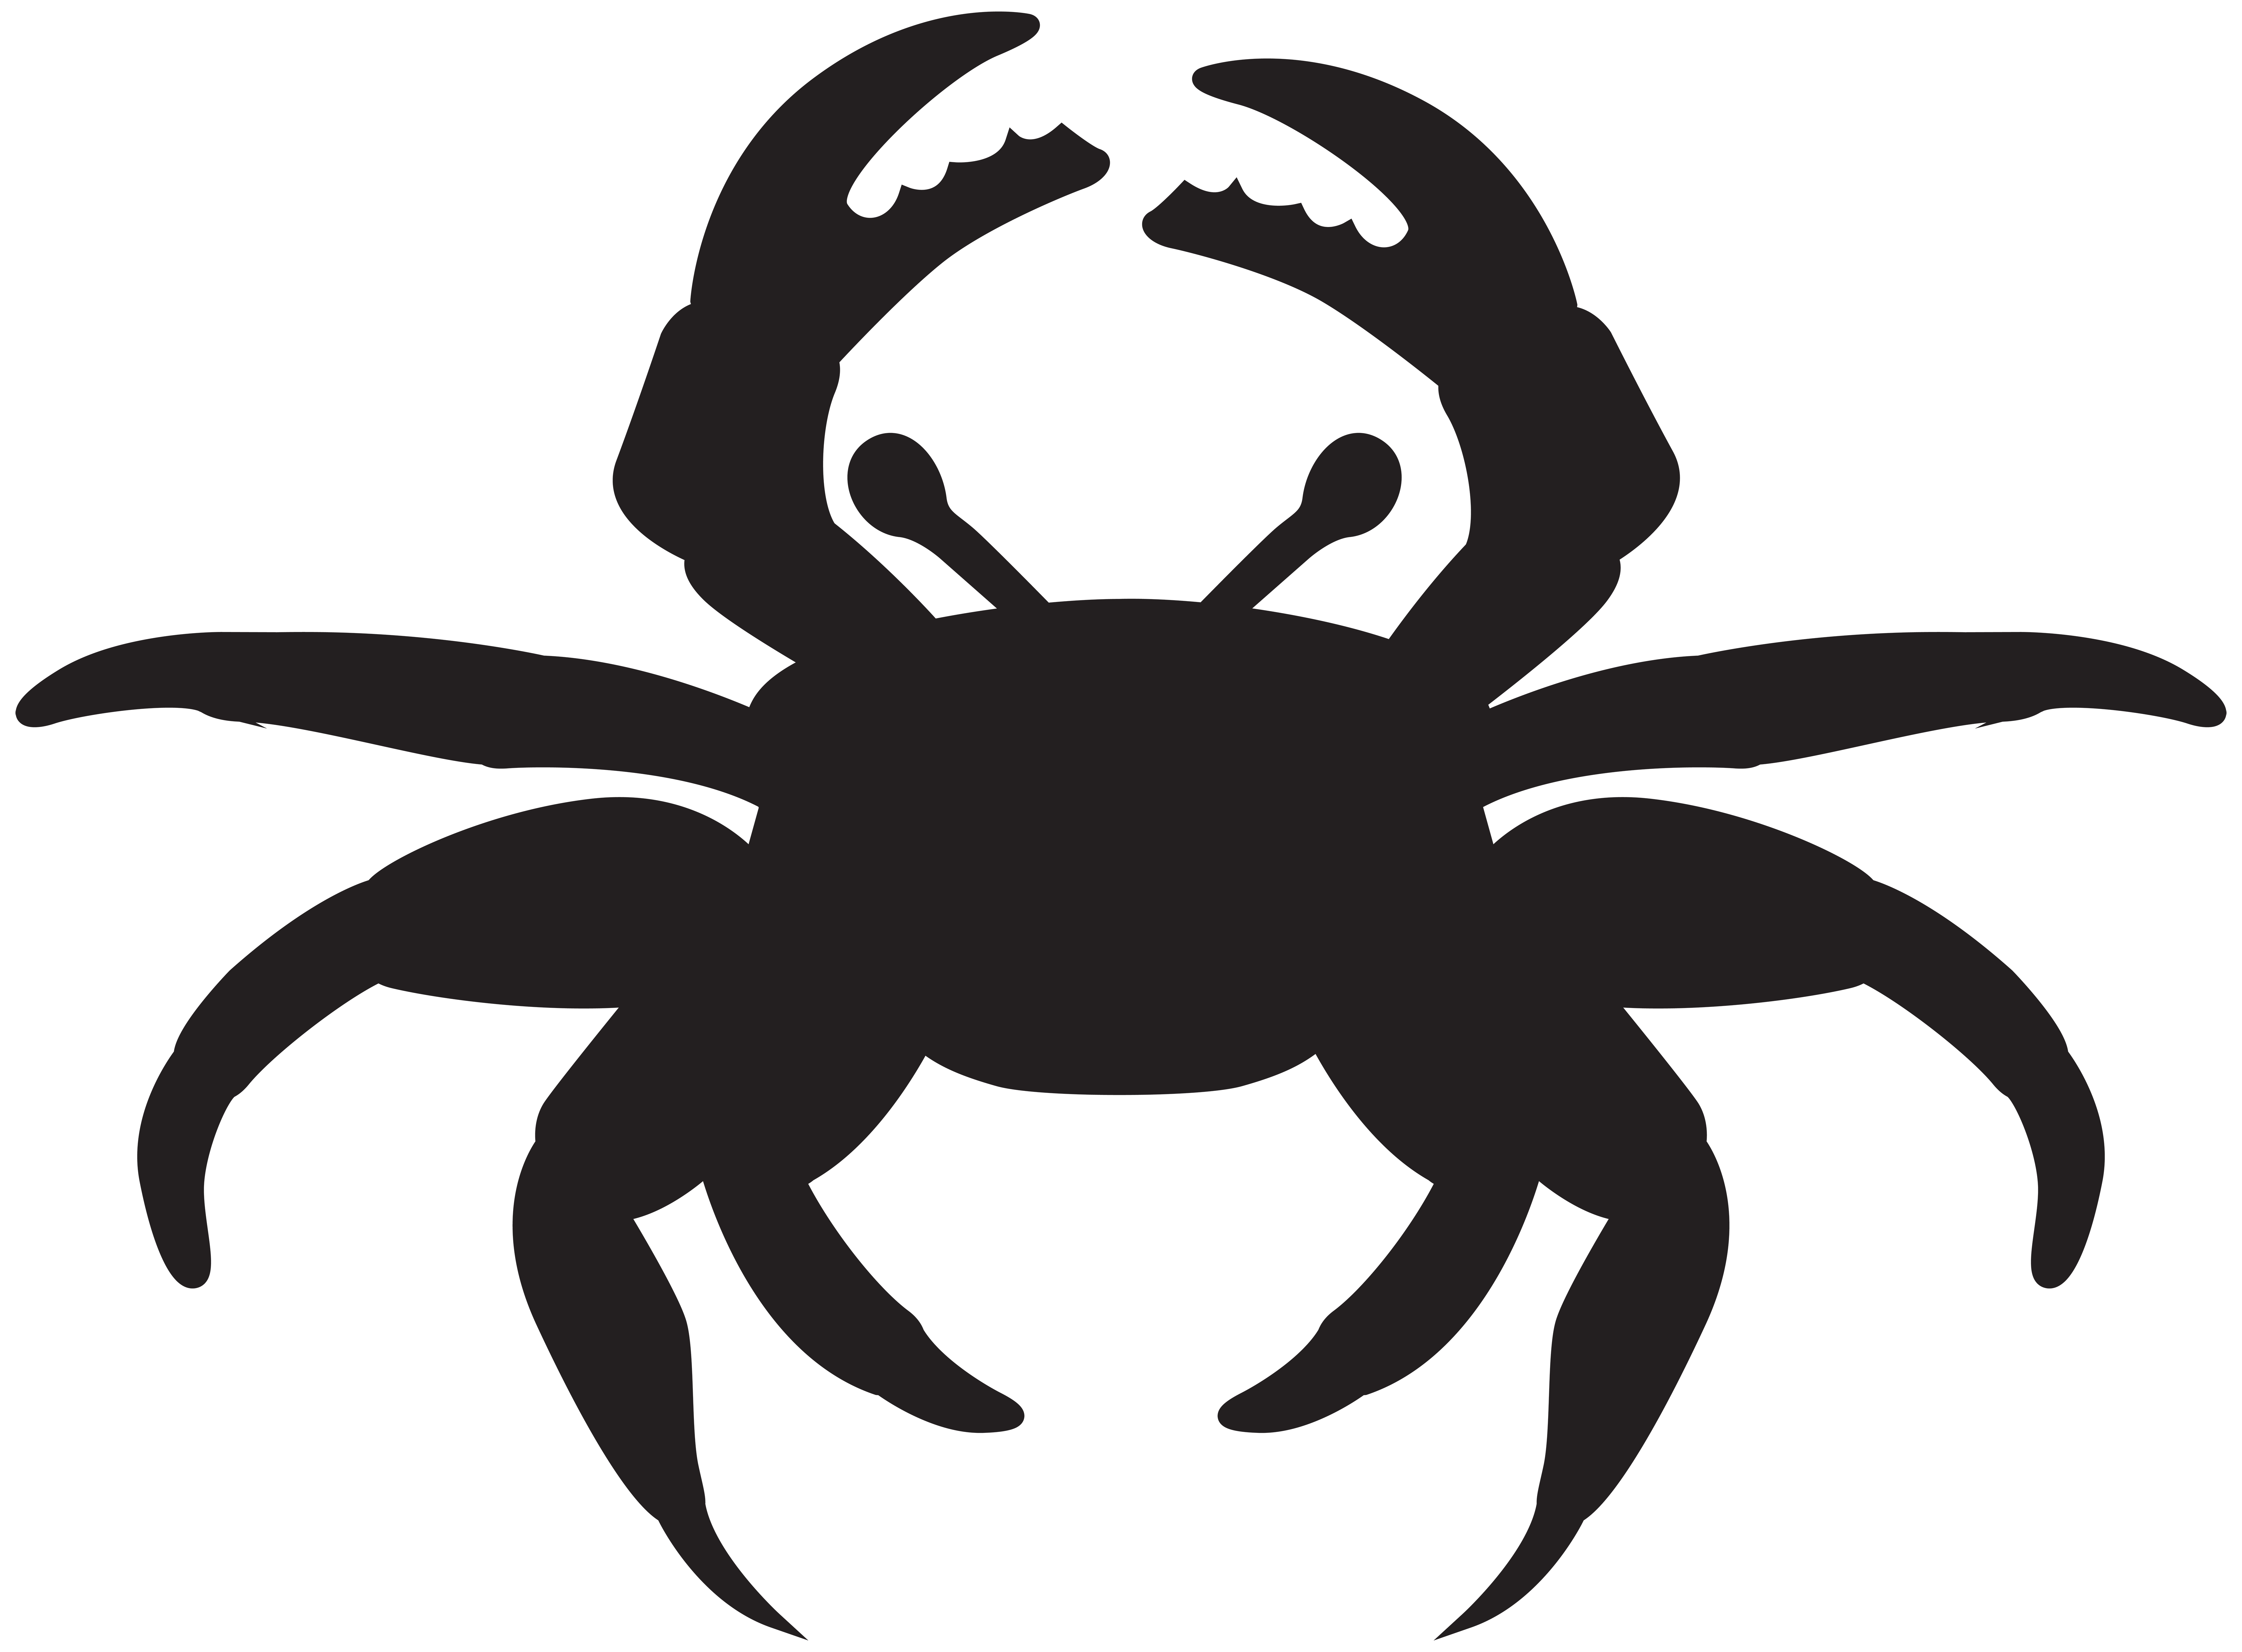 8000x5895 Crab Silhouette Png Clip Art Imageu200b Gallery Yopriceville